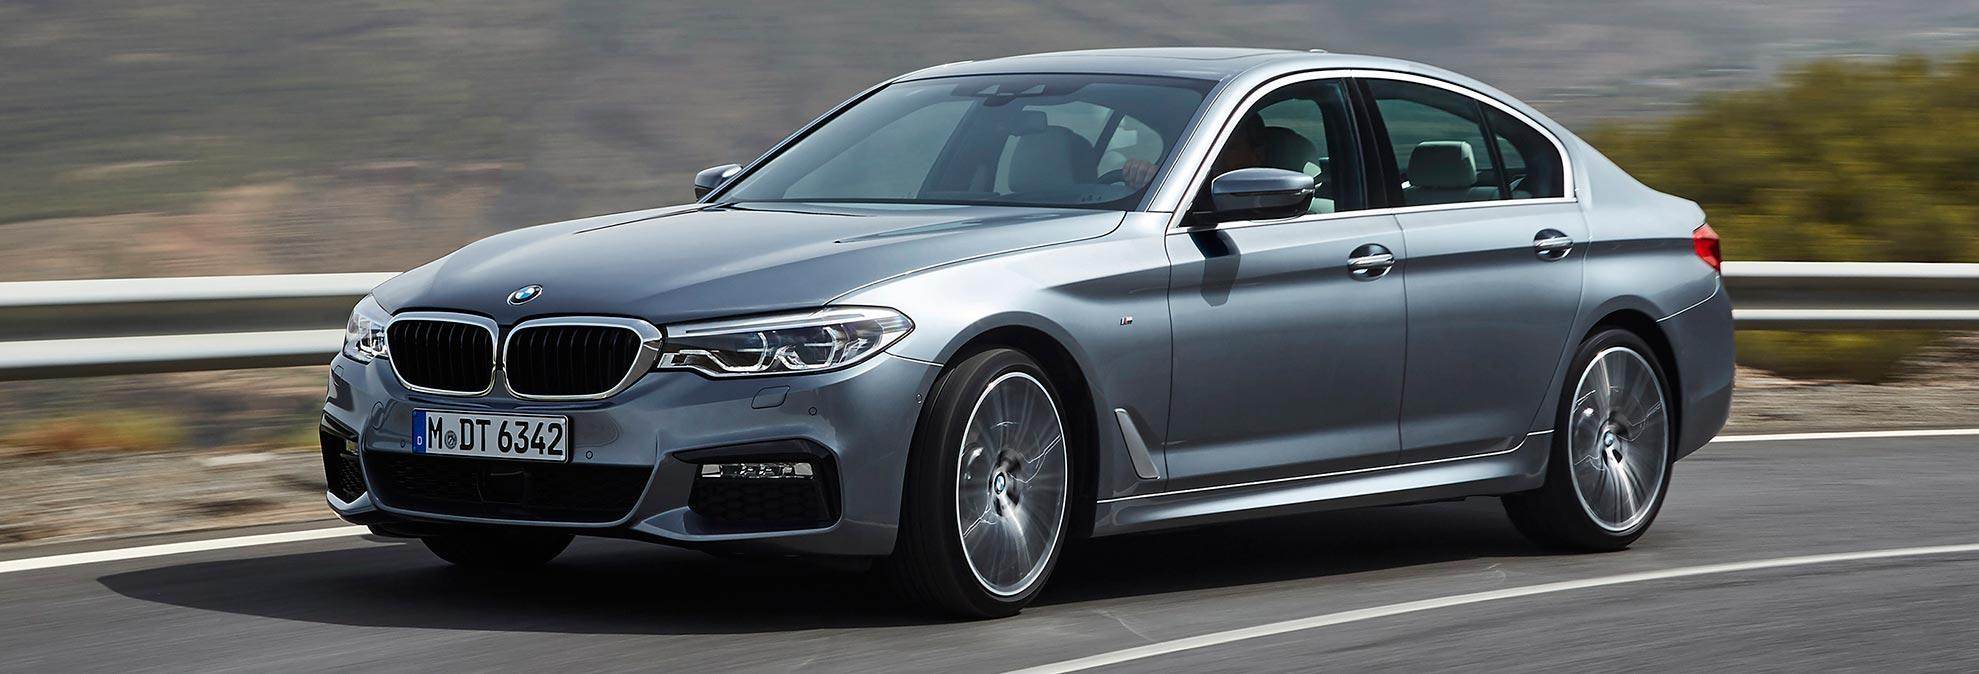 New 2017 Bmw 5 Series Sheds Pounds Piles On Tech